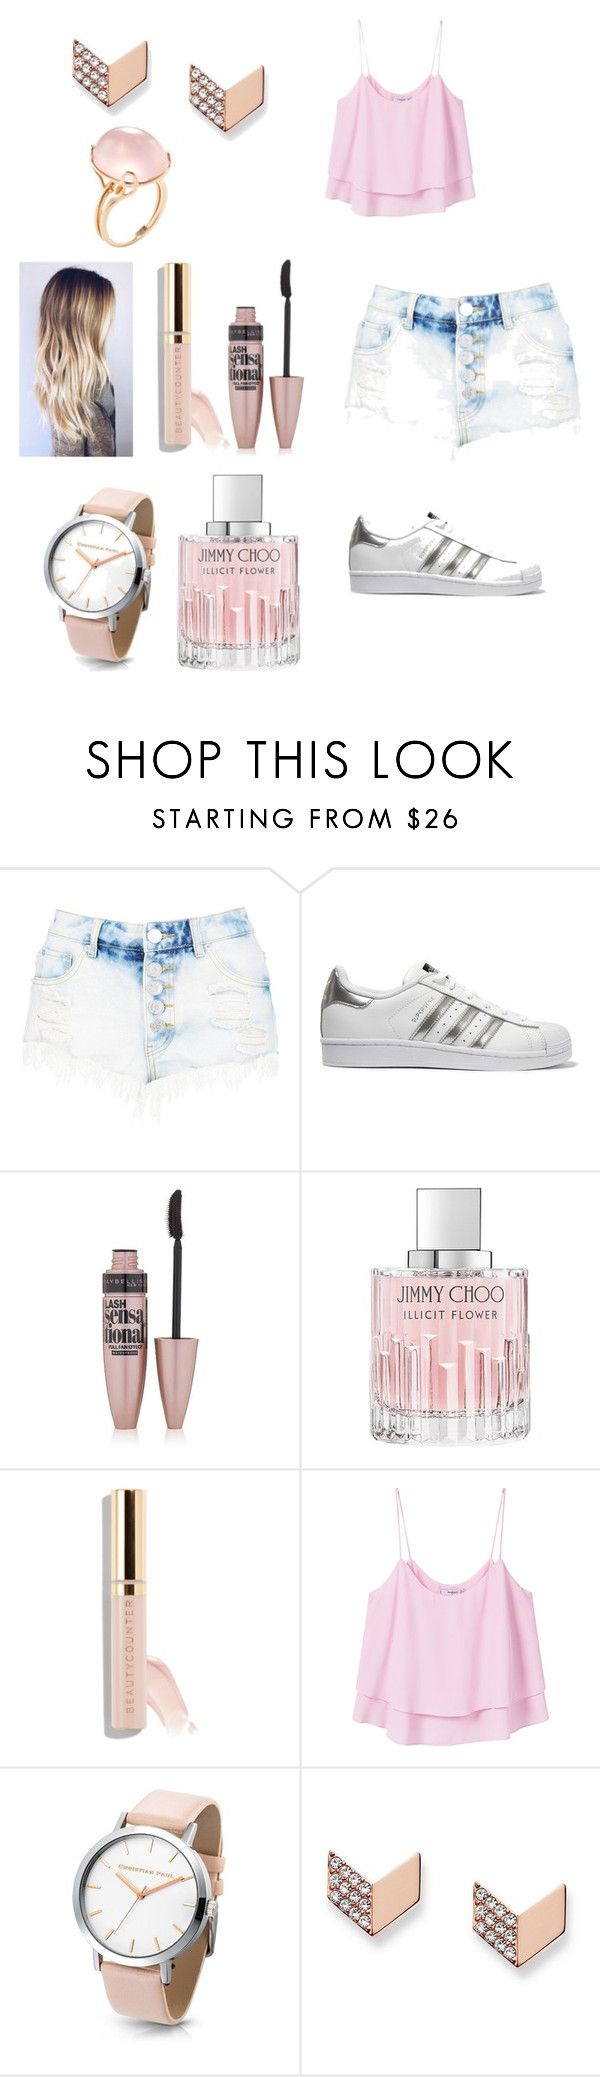 """""""If your a baby pink lover 💗💗💗"""" by rennpe ❤ liked on Polyvore featuring Boohoo, adidas Originals, Maybelline, Jimmy Choo, MANGO, FOSSIL and Goshwara"""